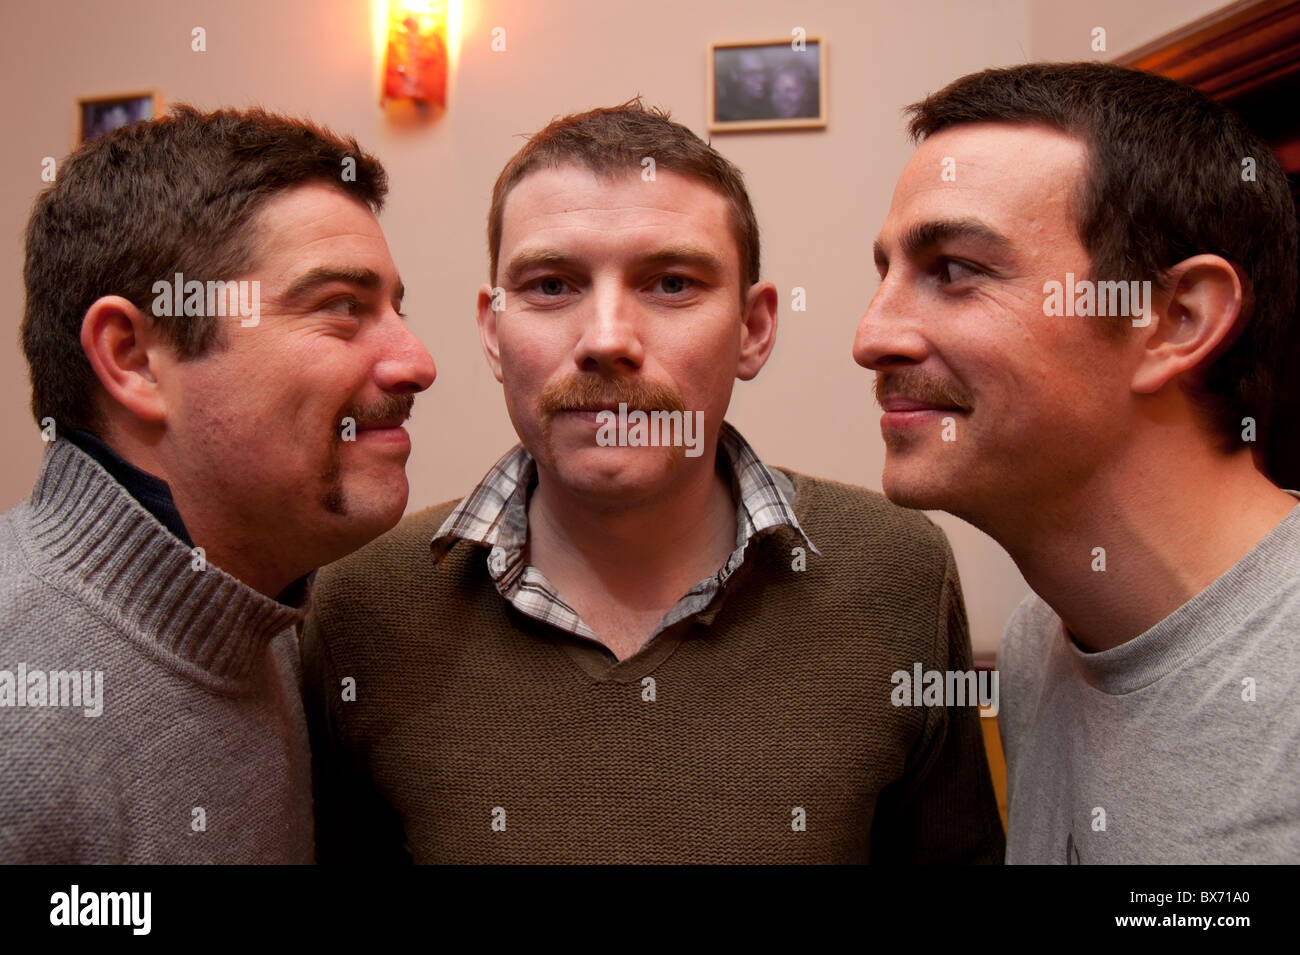 'Movember' growing mustaches charity fundraising event in aid of prostrate cancer research Aberystwyth Wales - Stock Image